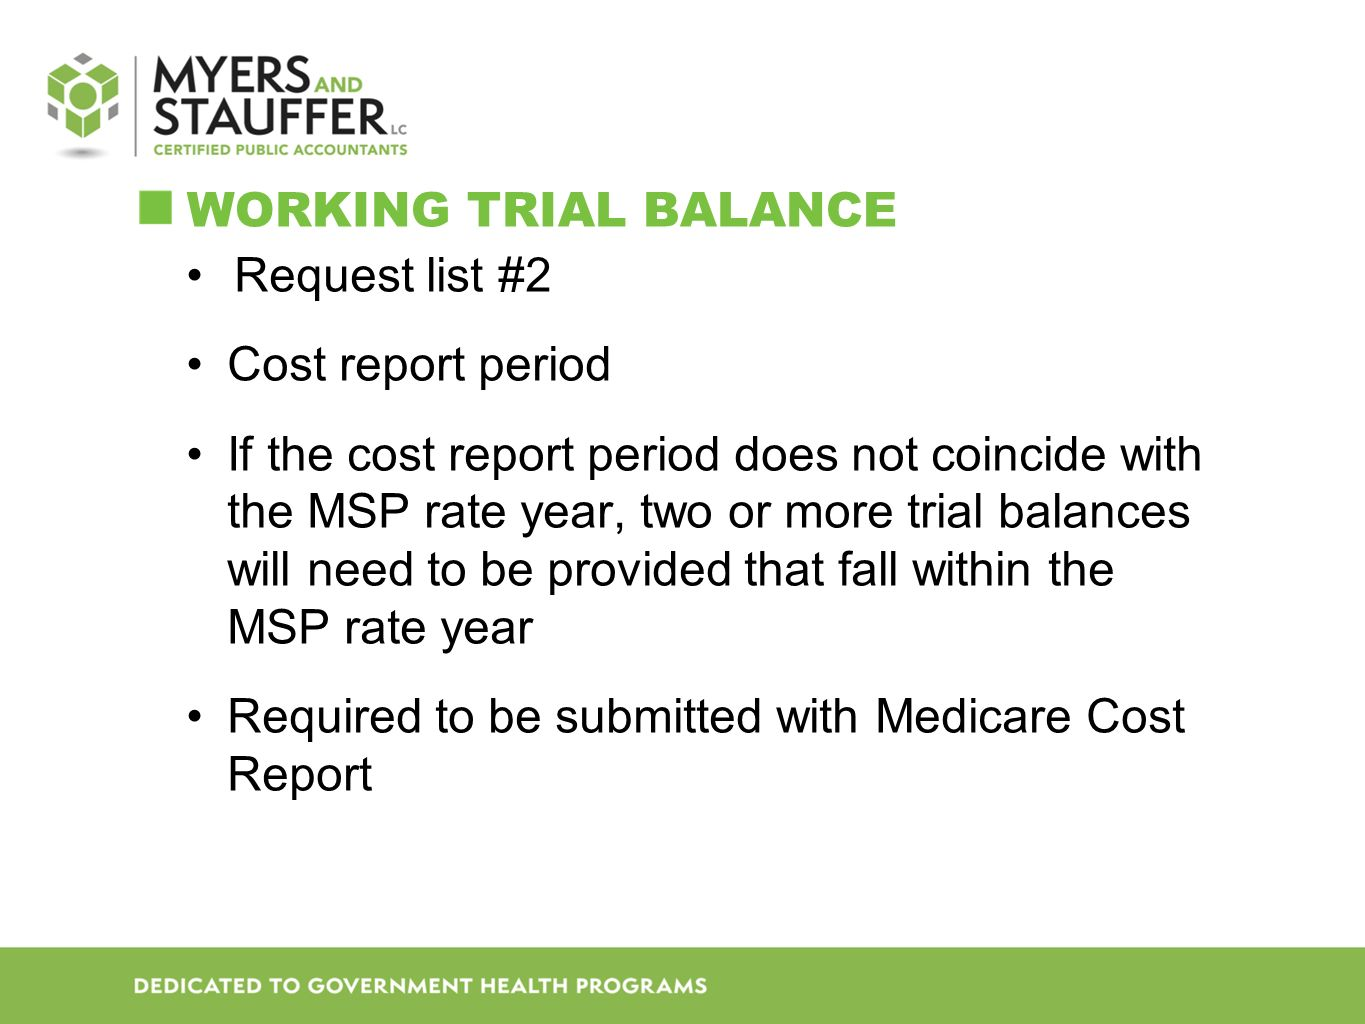 WORKING TRIAL BALANCE Request list #2 Cost report period If the cost report period does not coincide with the MSP rate year, two or more trial balances will need to be provided that fall within the MSP rate year Required to be submitted with Medicare Cost Report